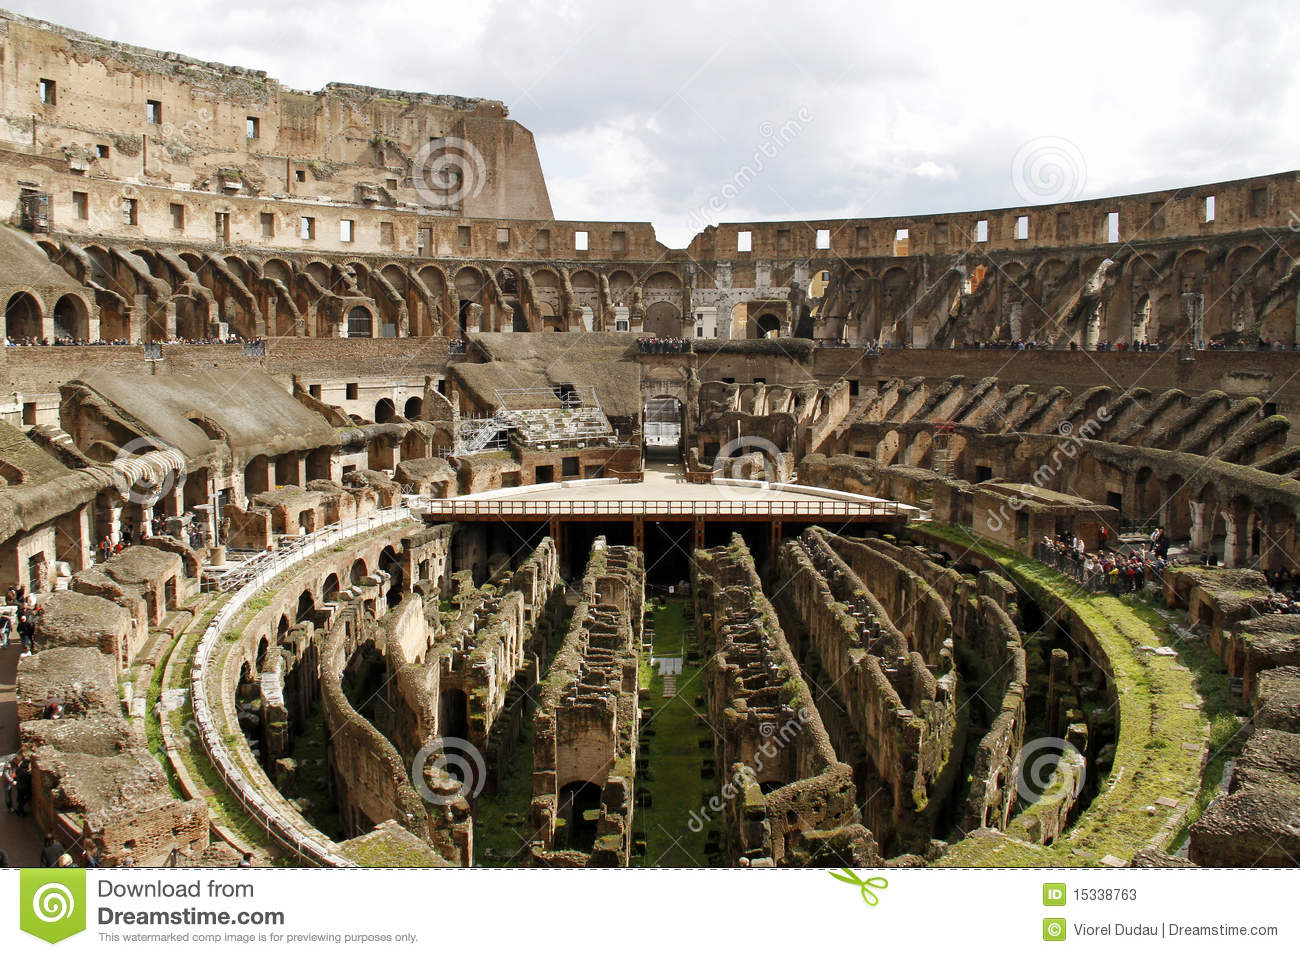 Wide interior of the big ancient Colloseum in Rome, Italy.